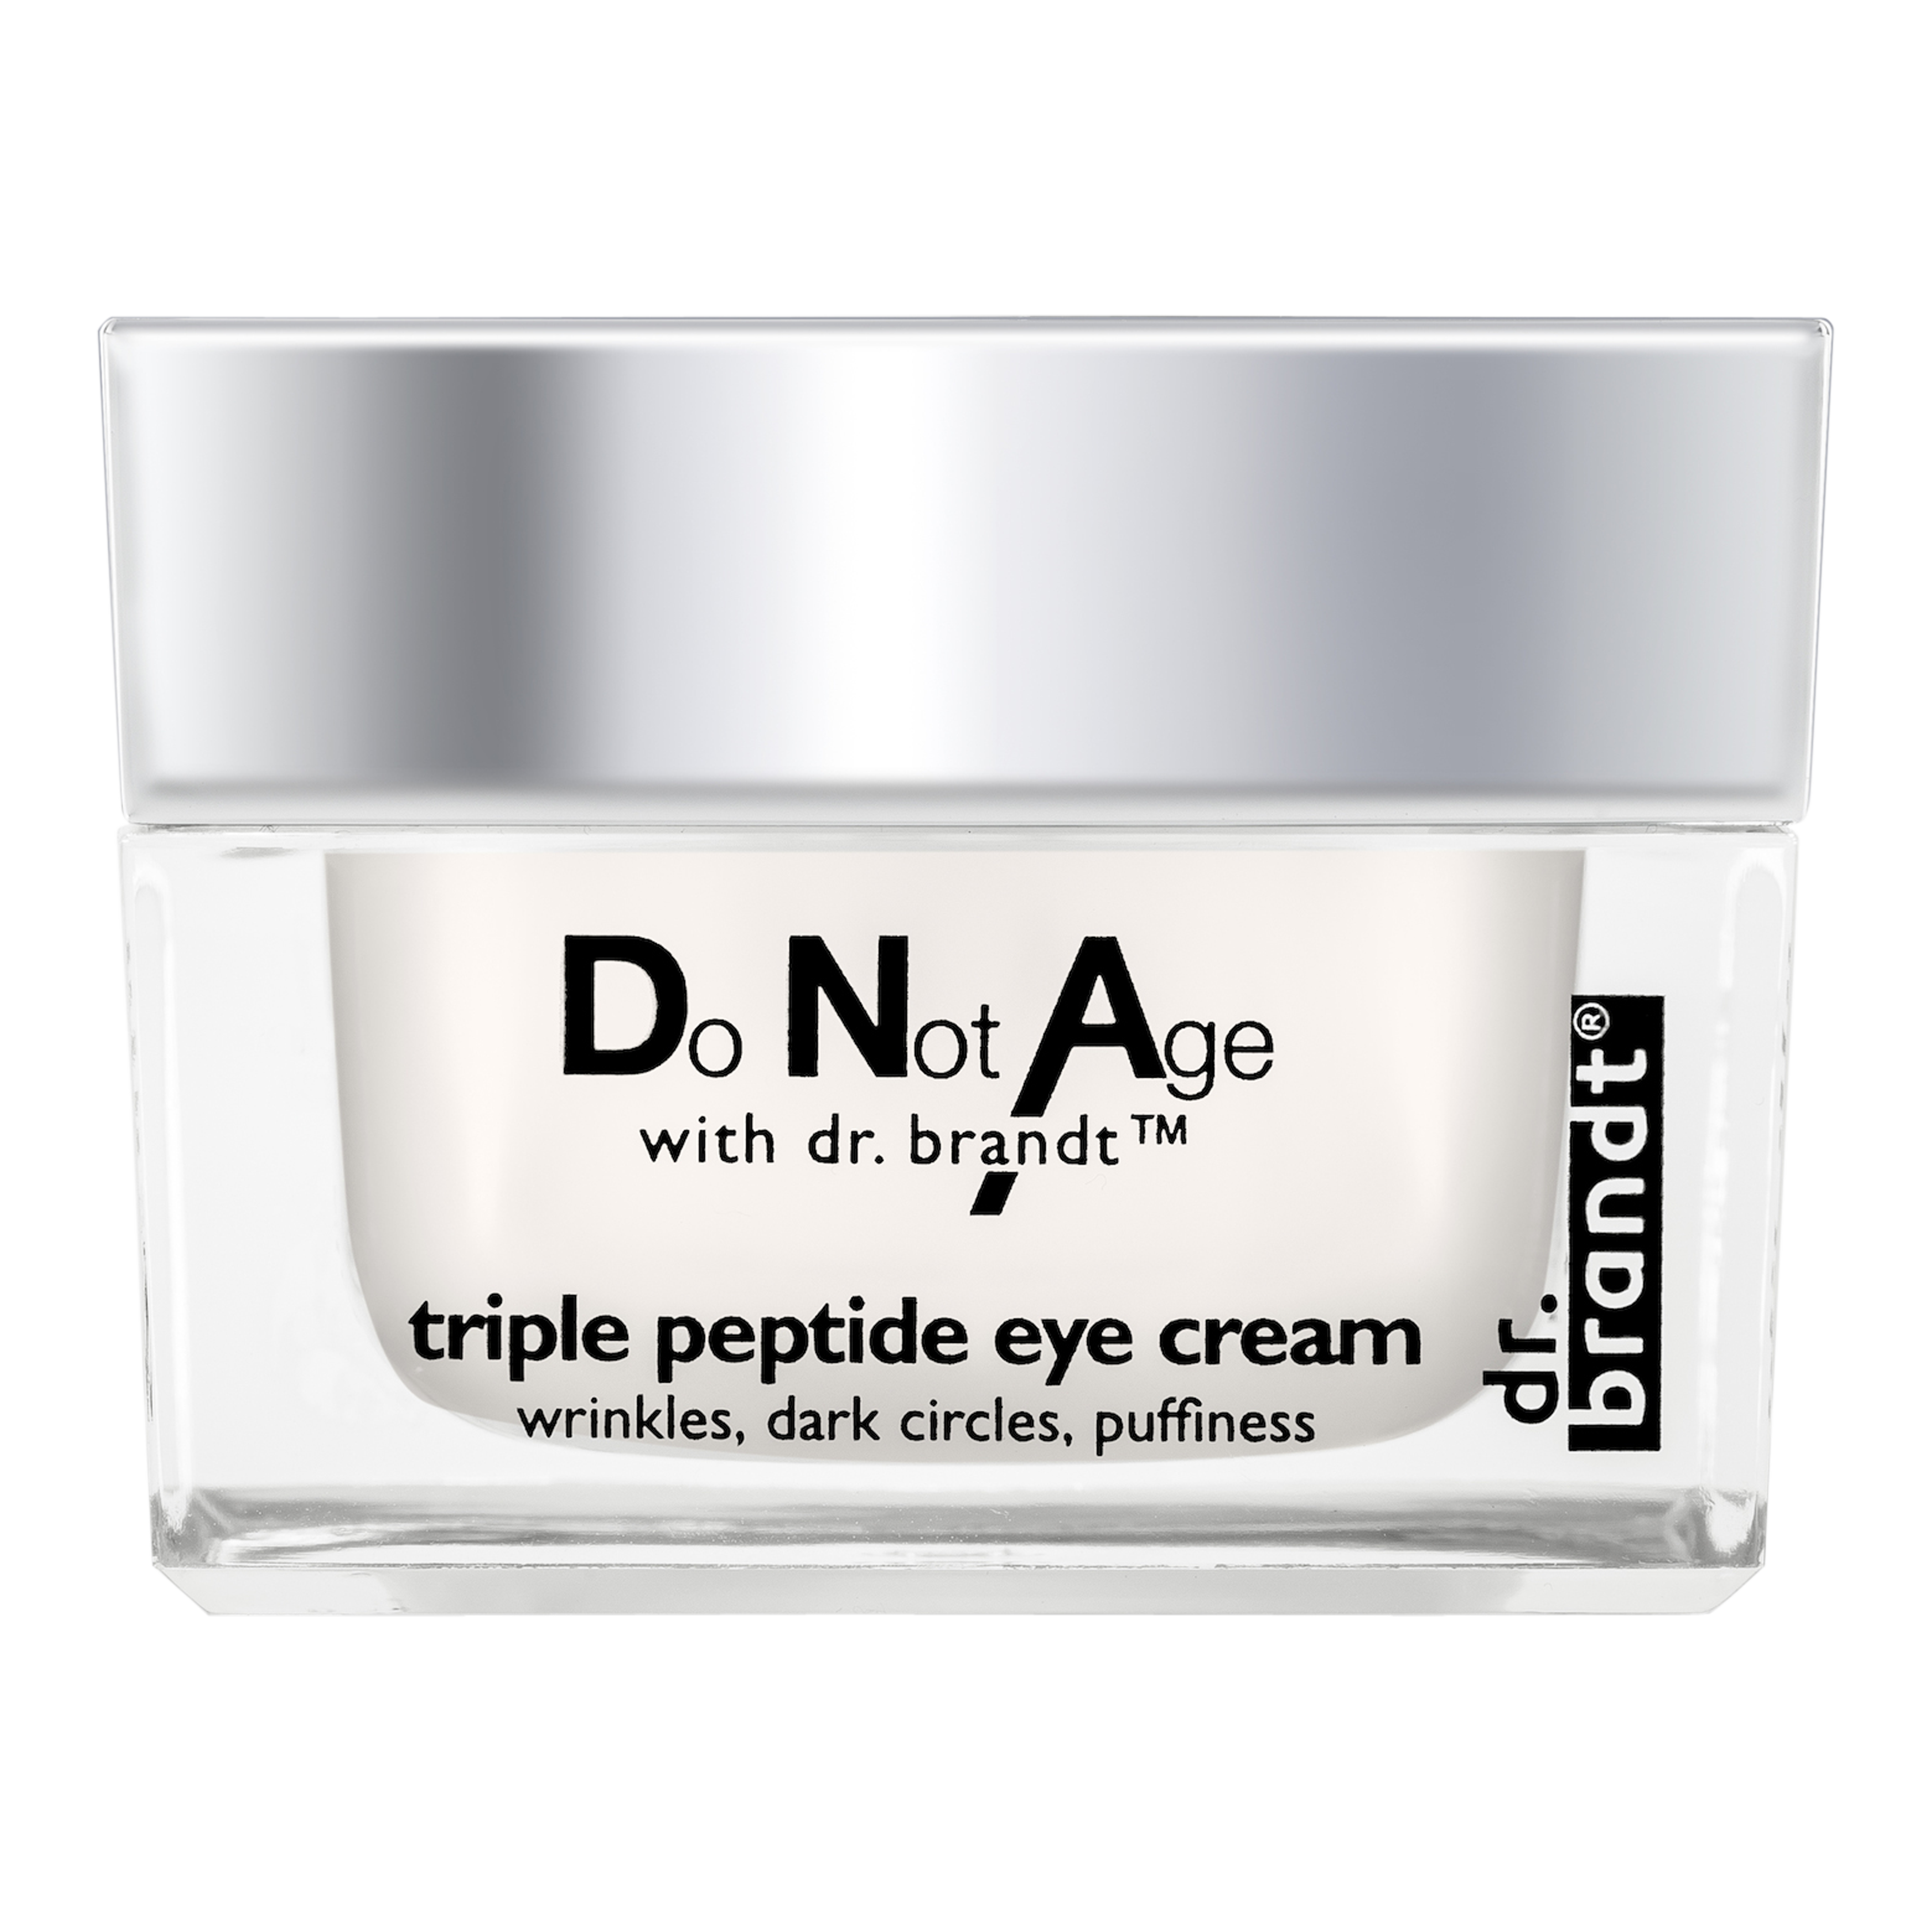 Do Not Age With Triple Peptide Eye Cream 15 g